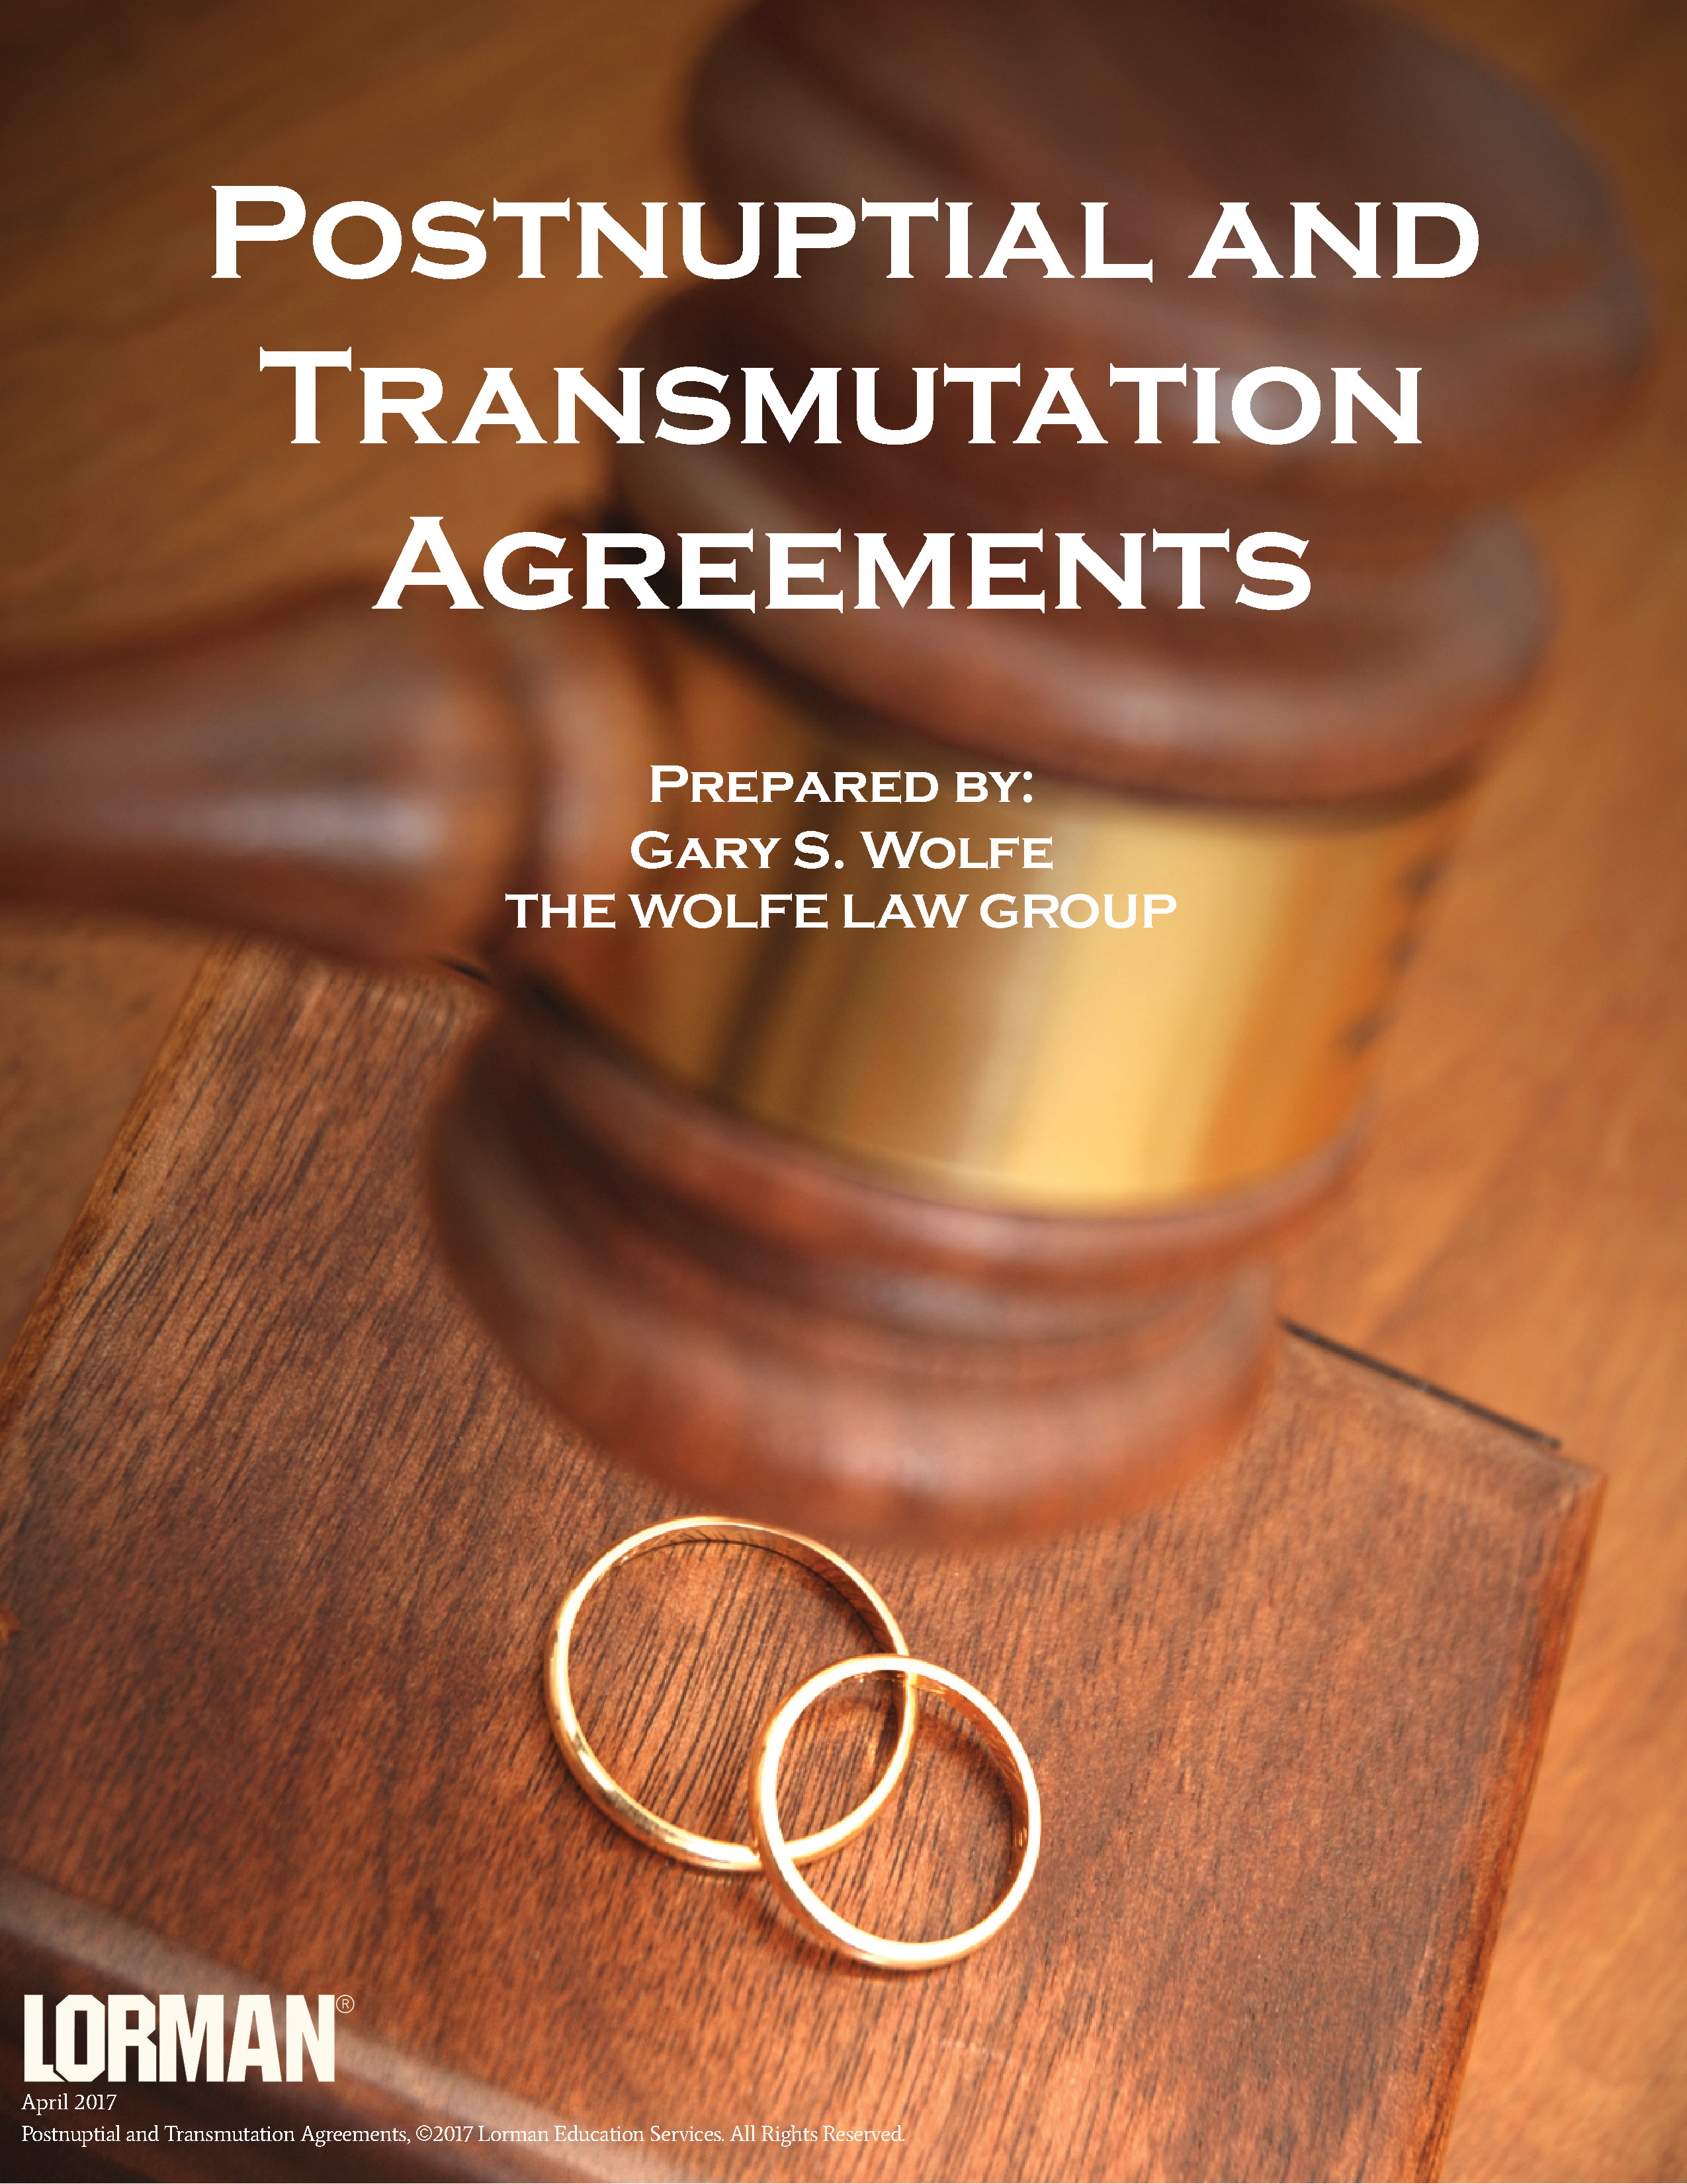 Postnuptial and Transmutation Agreements